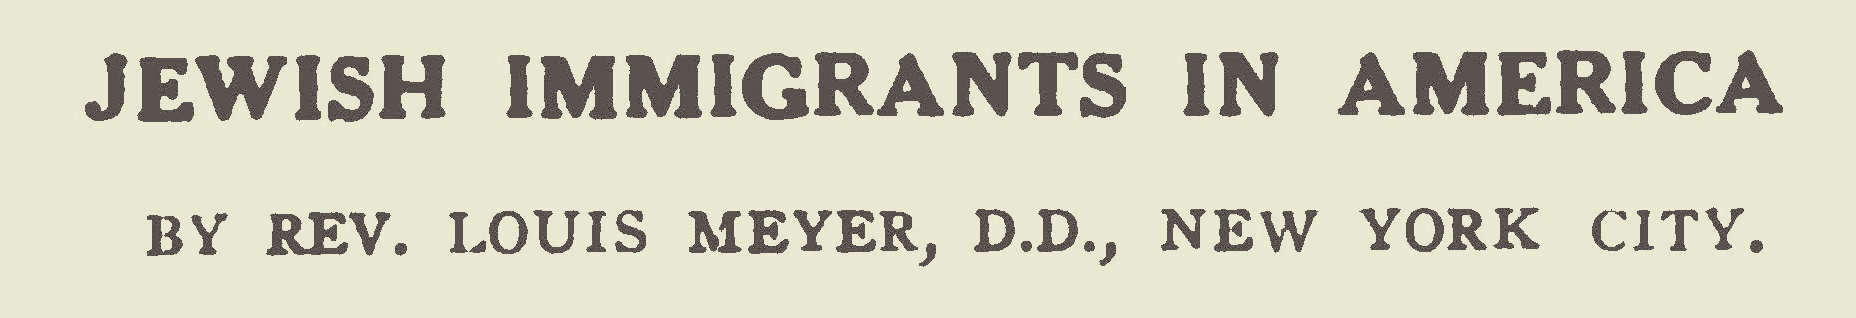 Meyer, Louis, Jewish Immigrants in America Title Page.jpg